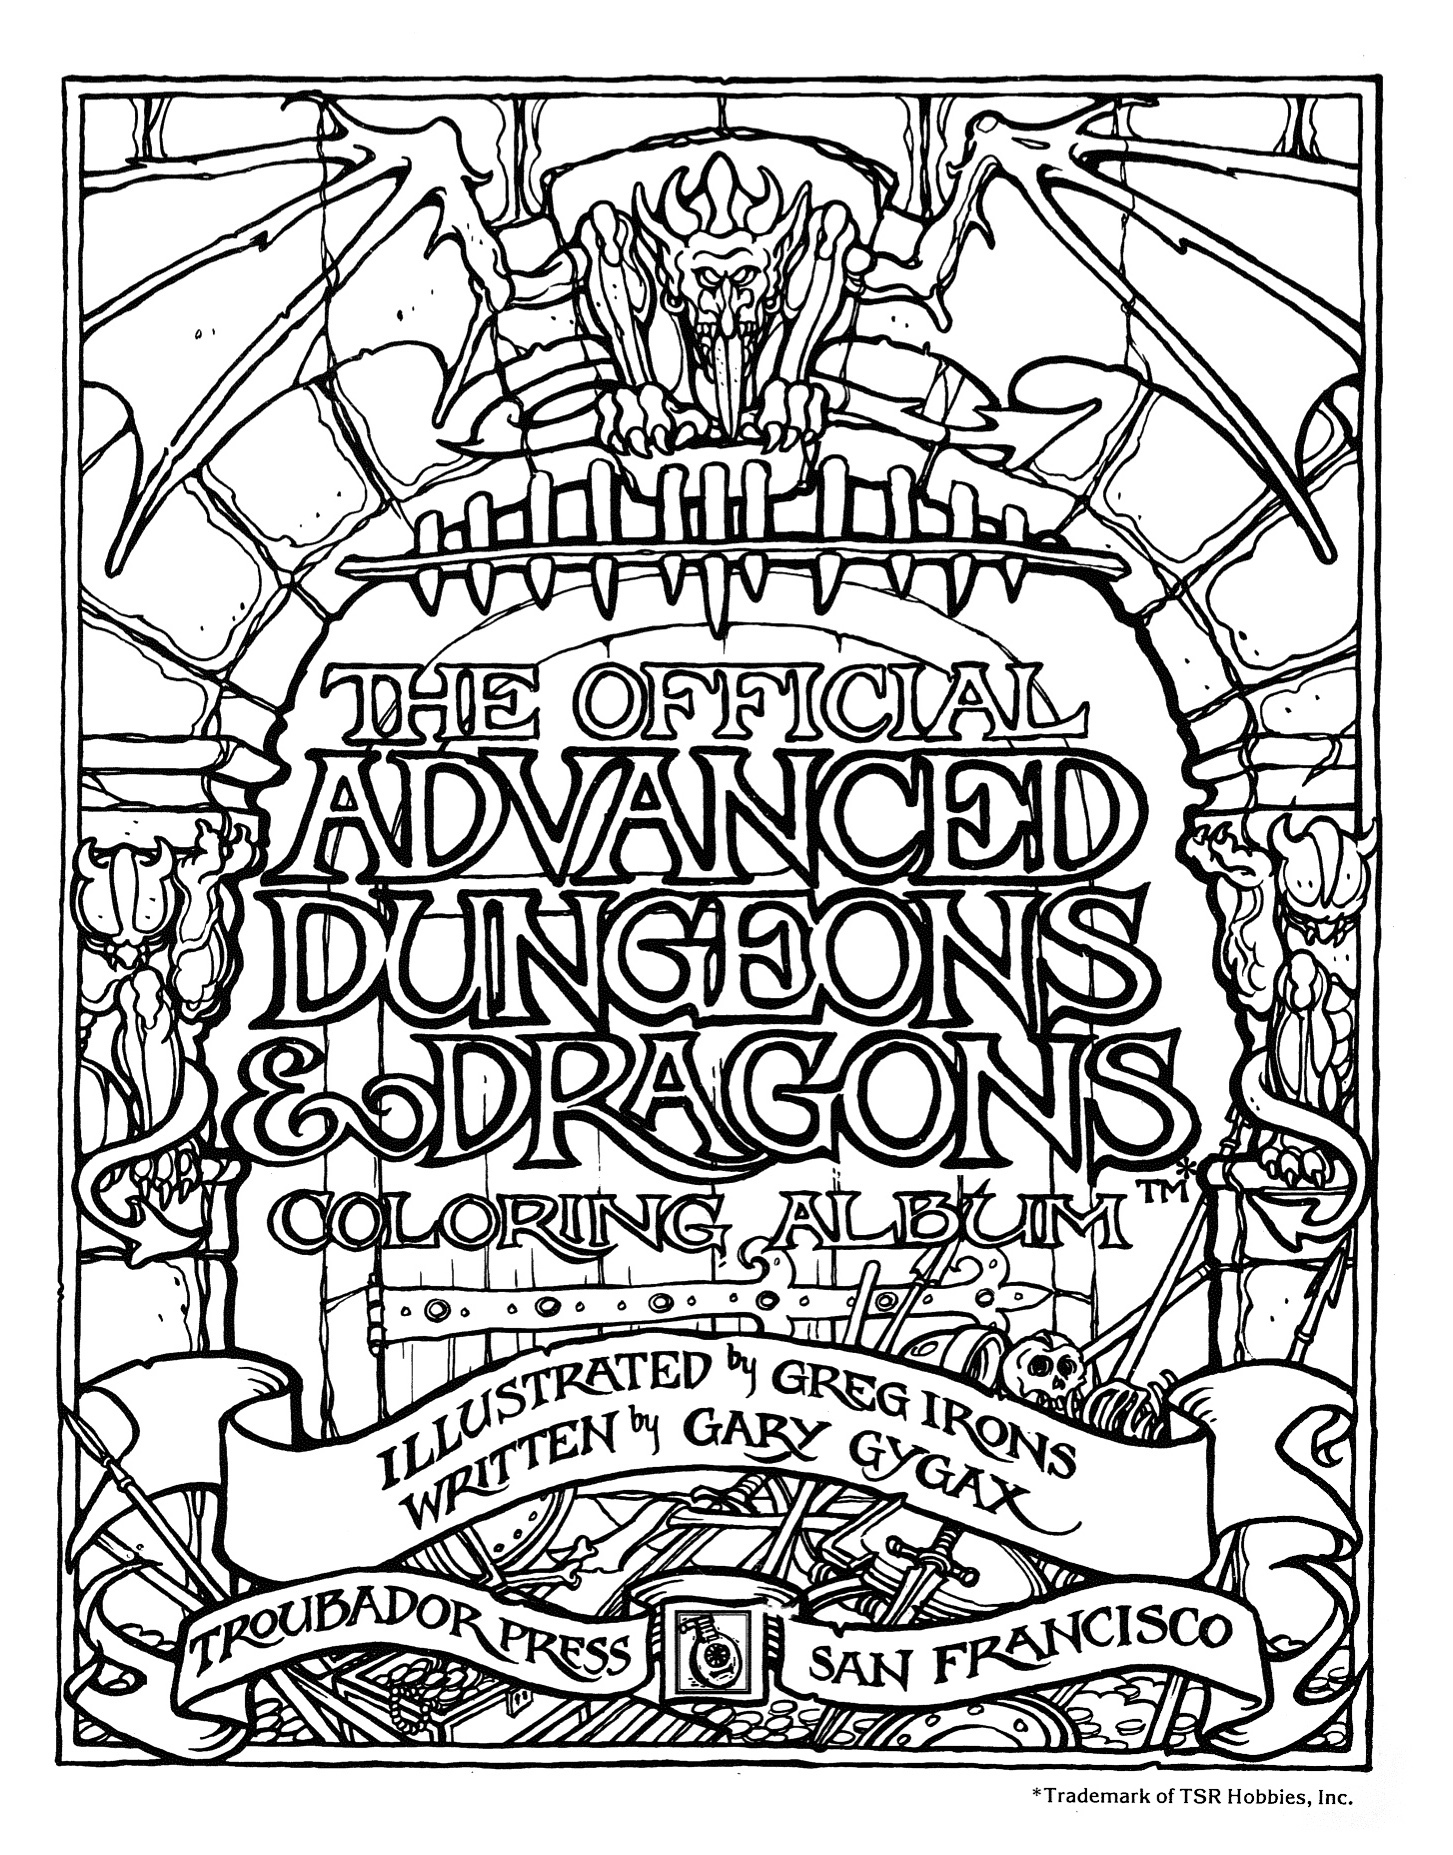 Coloring Book Album Cover : MONSTER BRAINS: The Official Advanced Dungeons and Dragons Coloring Book Illustrated by Greg ...